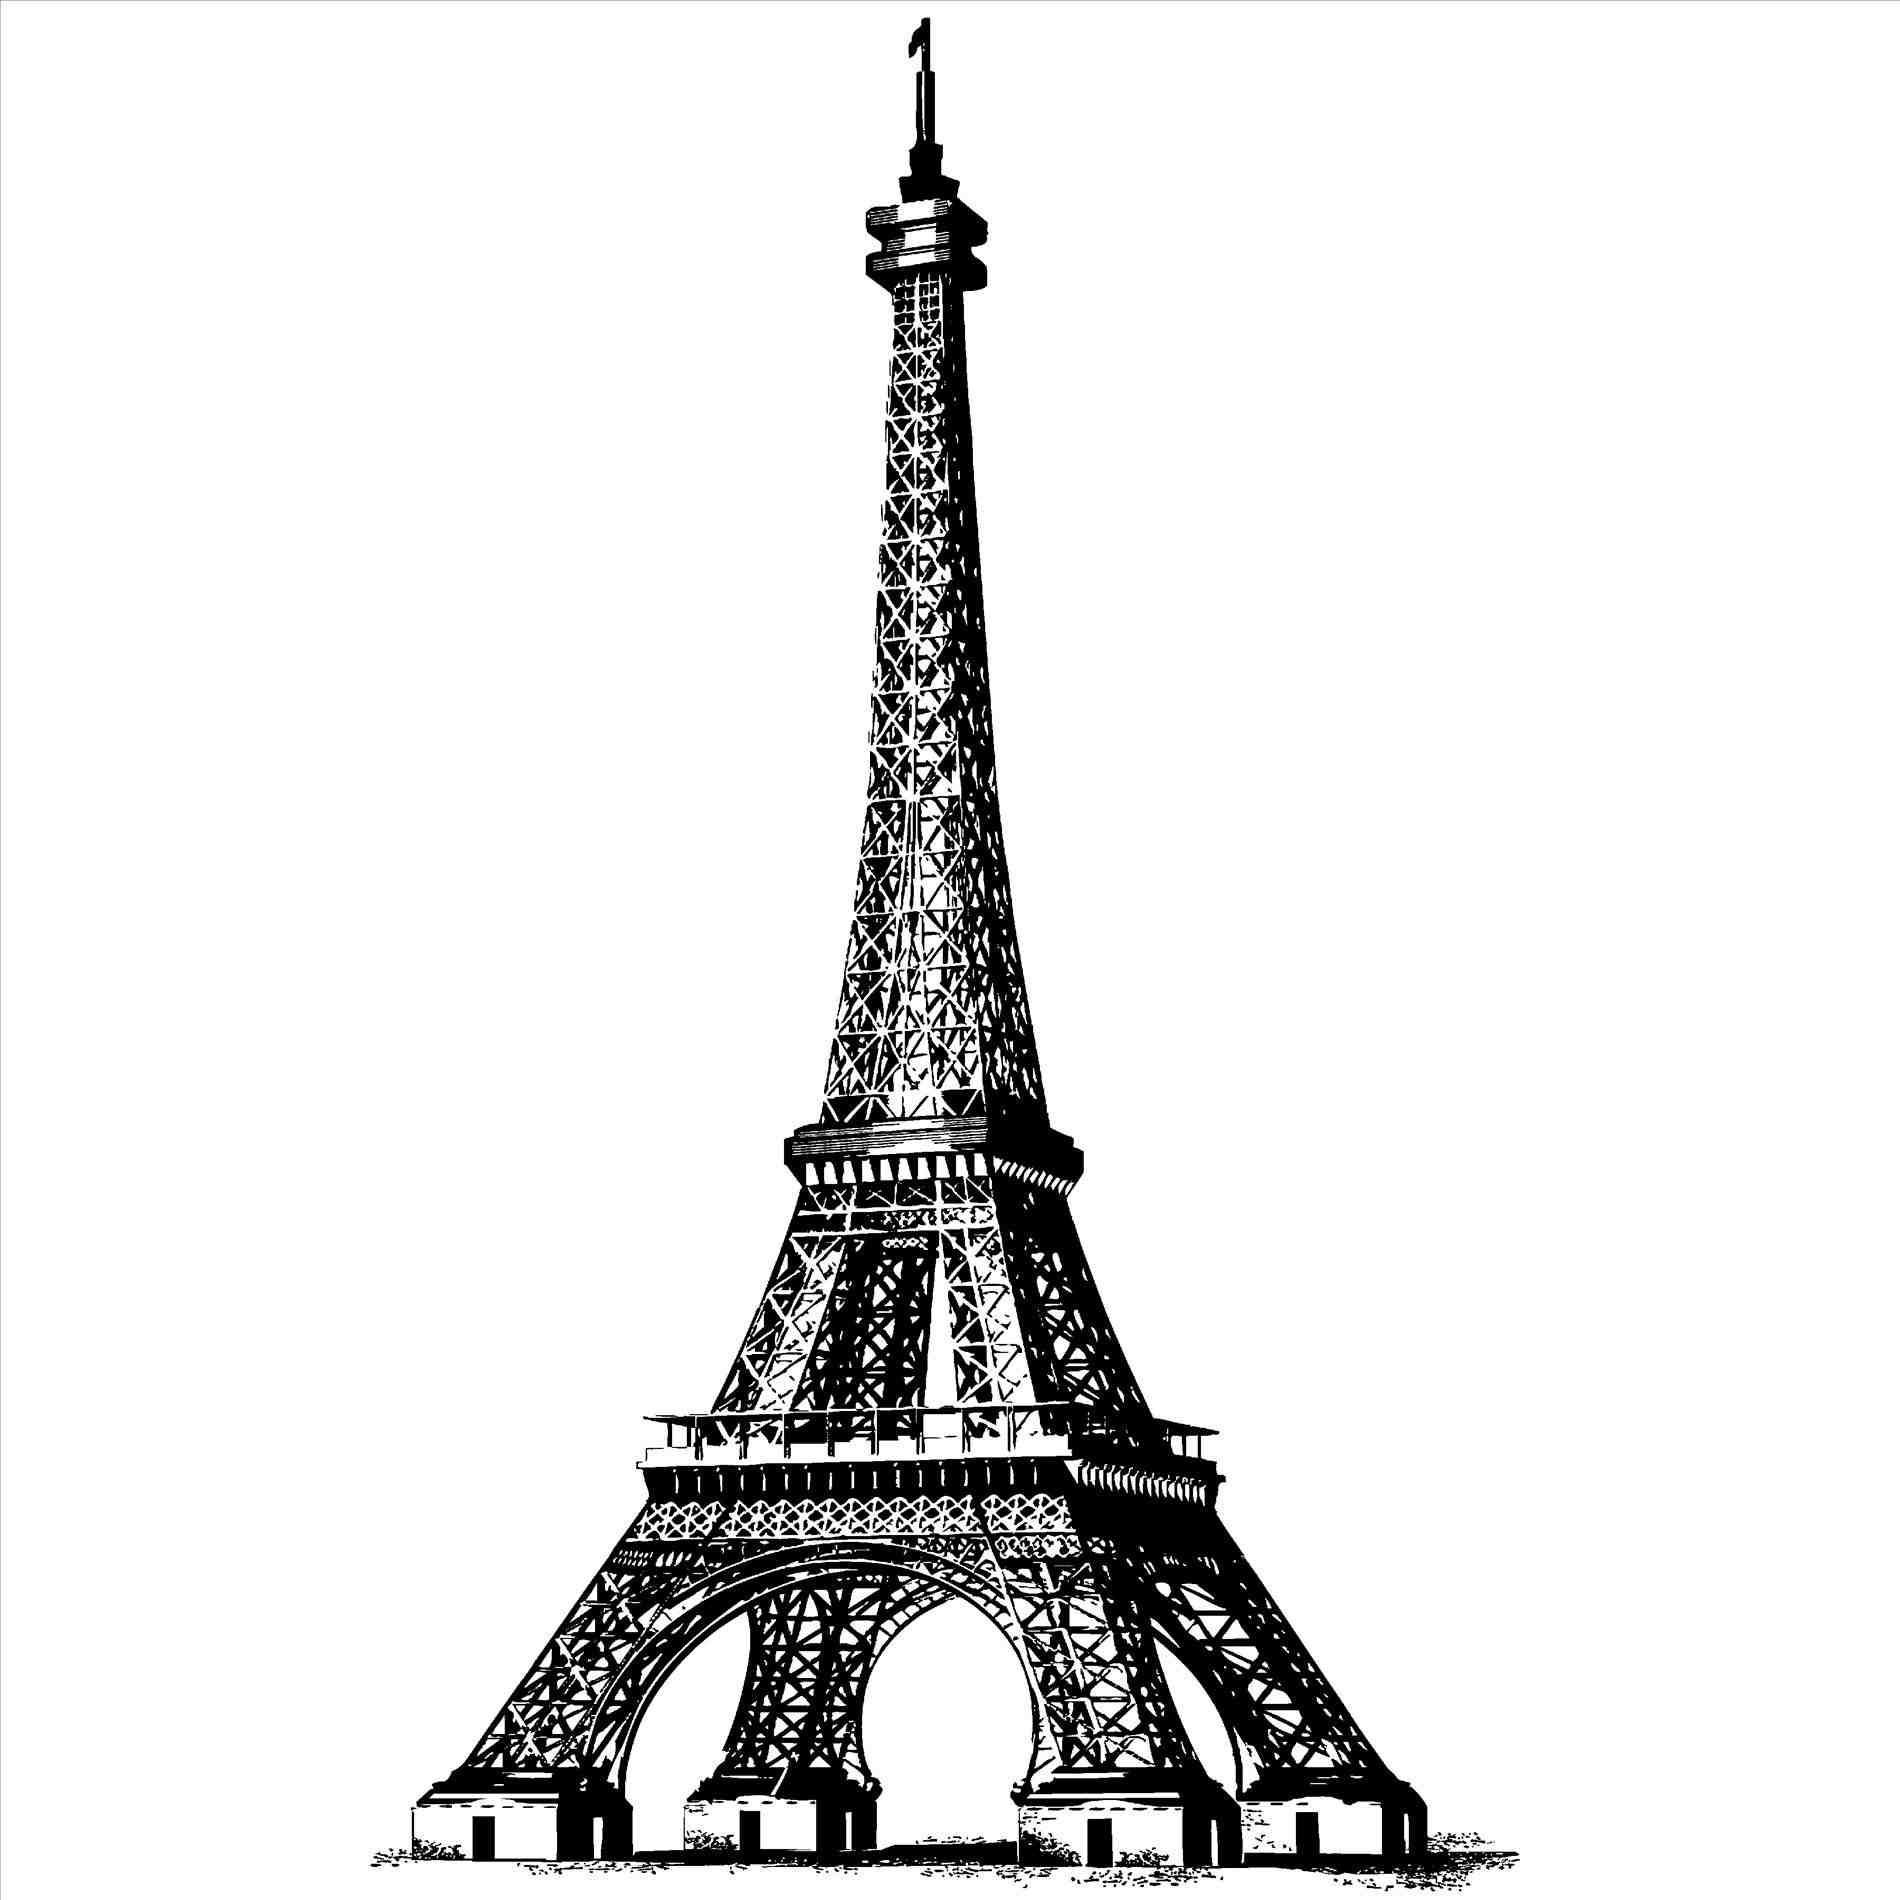 drawing of the eiffel tower eiffel tower picture vintage line drawing the graphics tower the drawing eiffel of